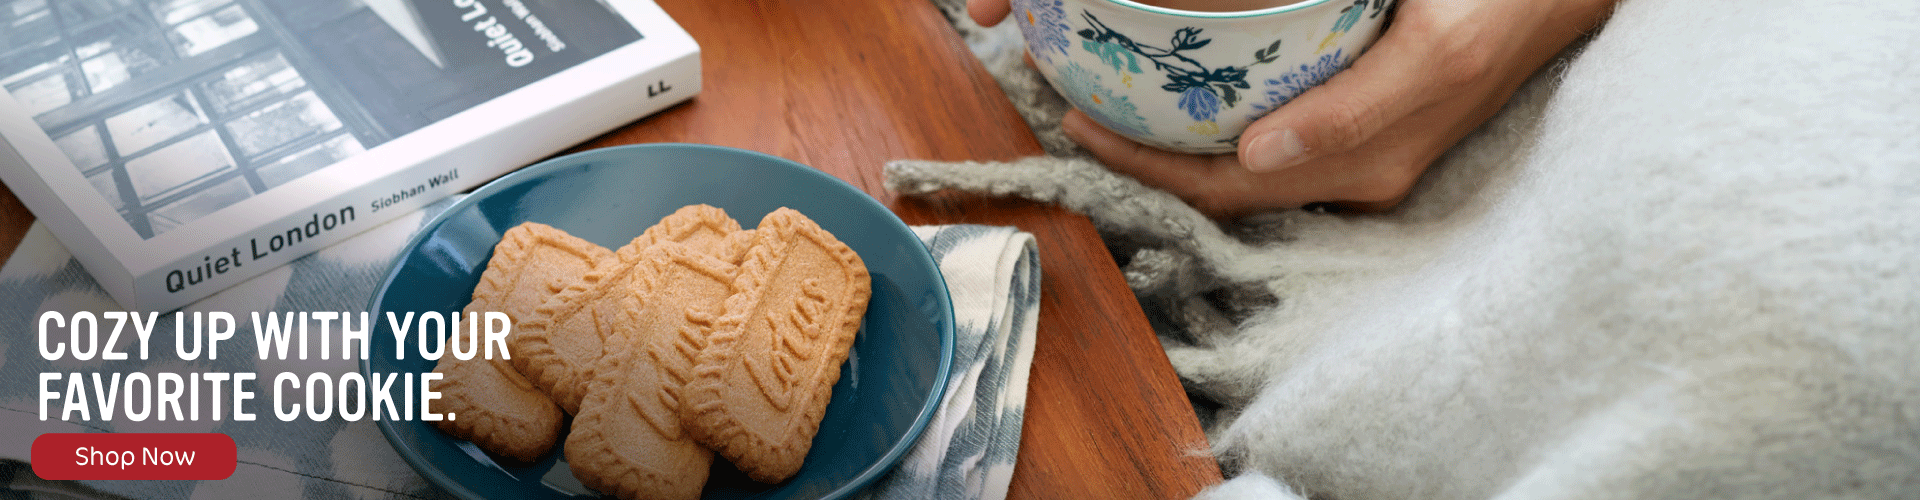 Cozy Up with your Favorite Cookie.